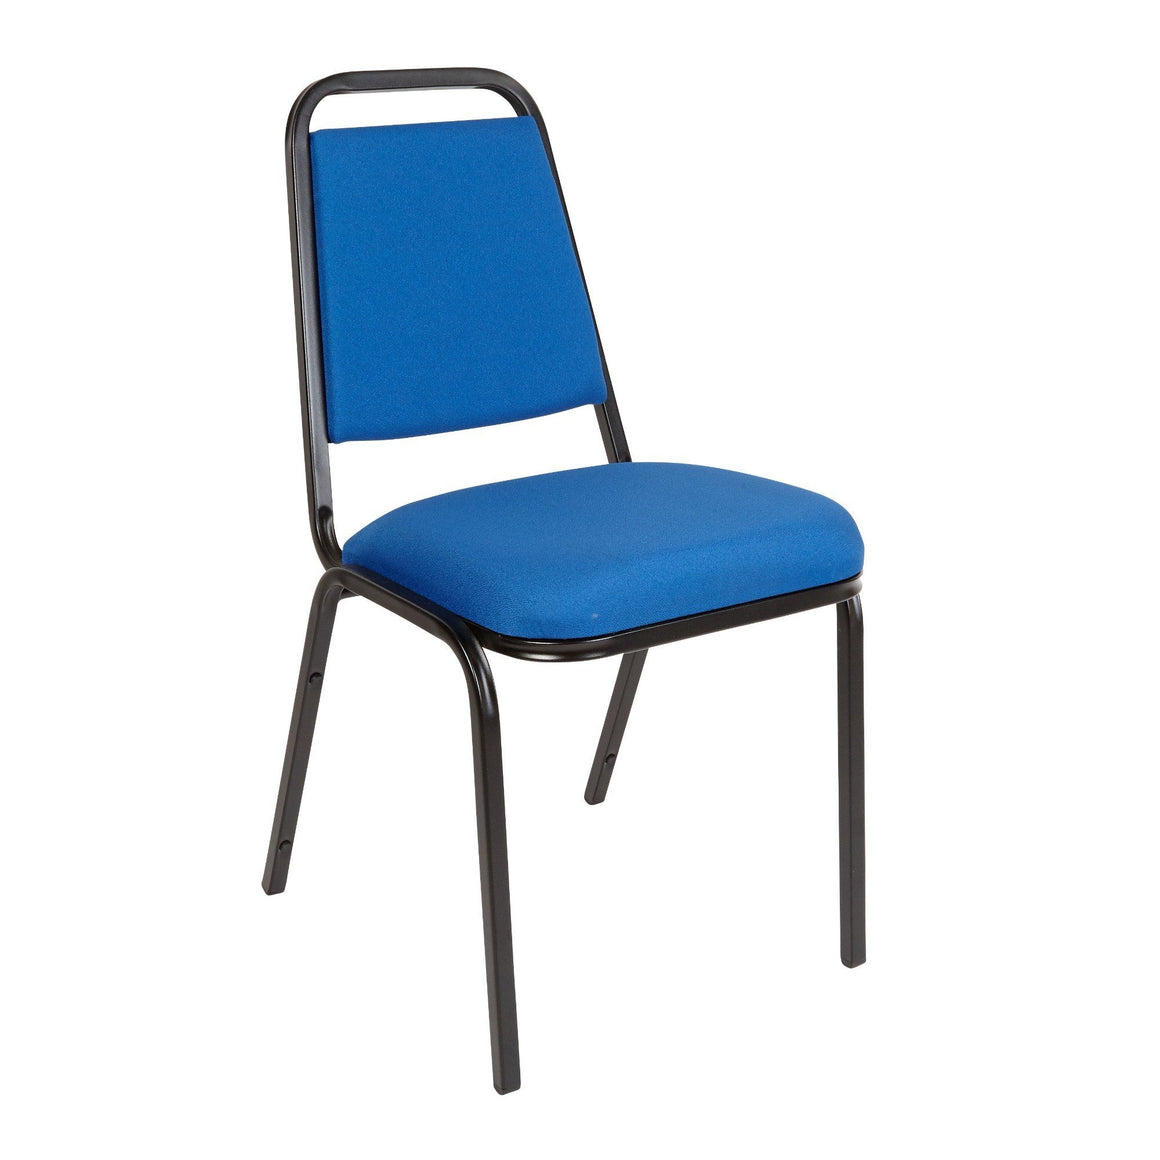 Chair Blue Banquet Chair